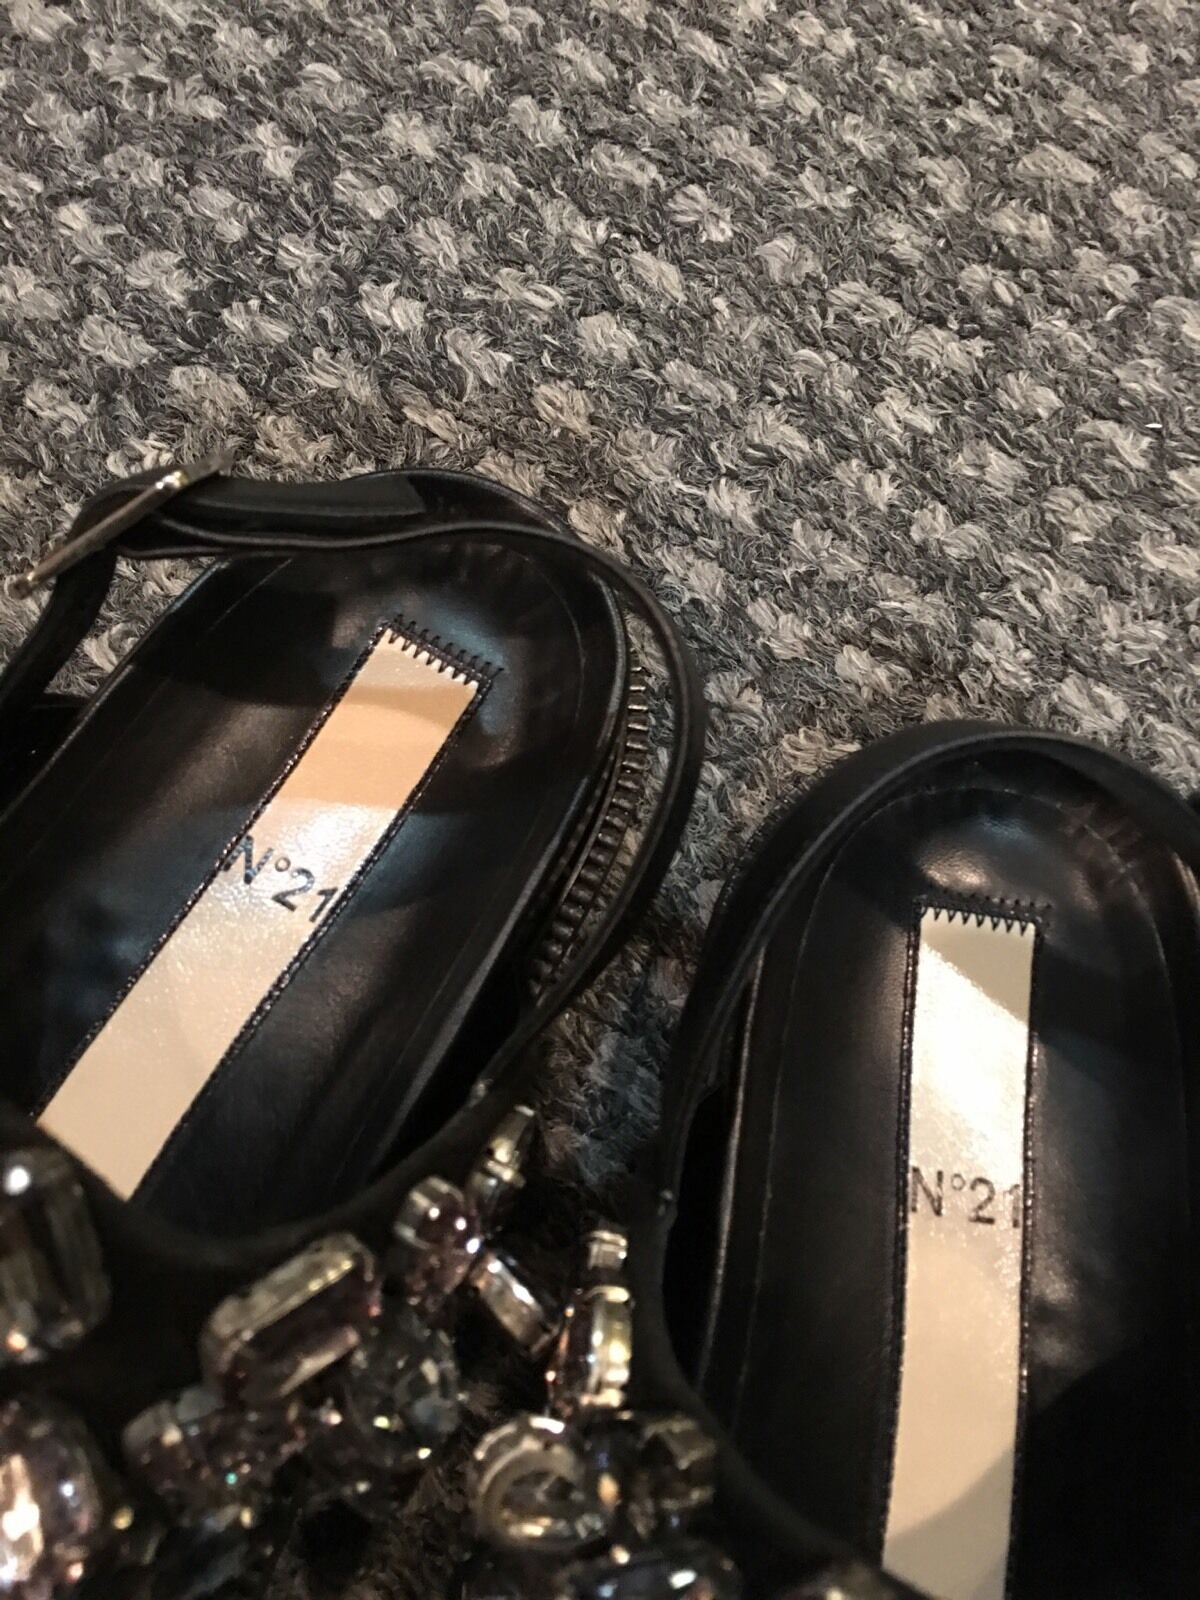 NO. 21 BLACK LEATHER JEWELED EMBELLISHED FLAT CASUAL SANDALS SANDALS SANDALS SZ 37 ITALY bf714f